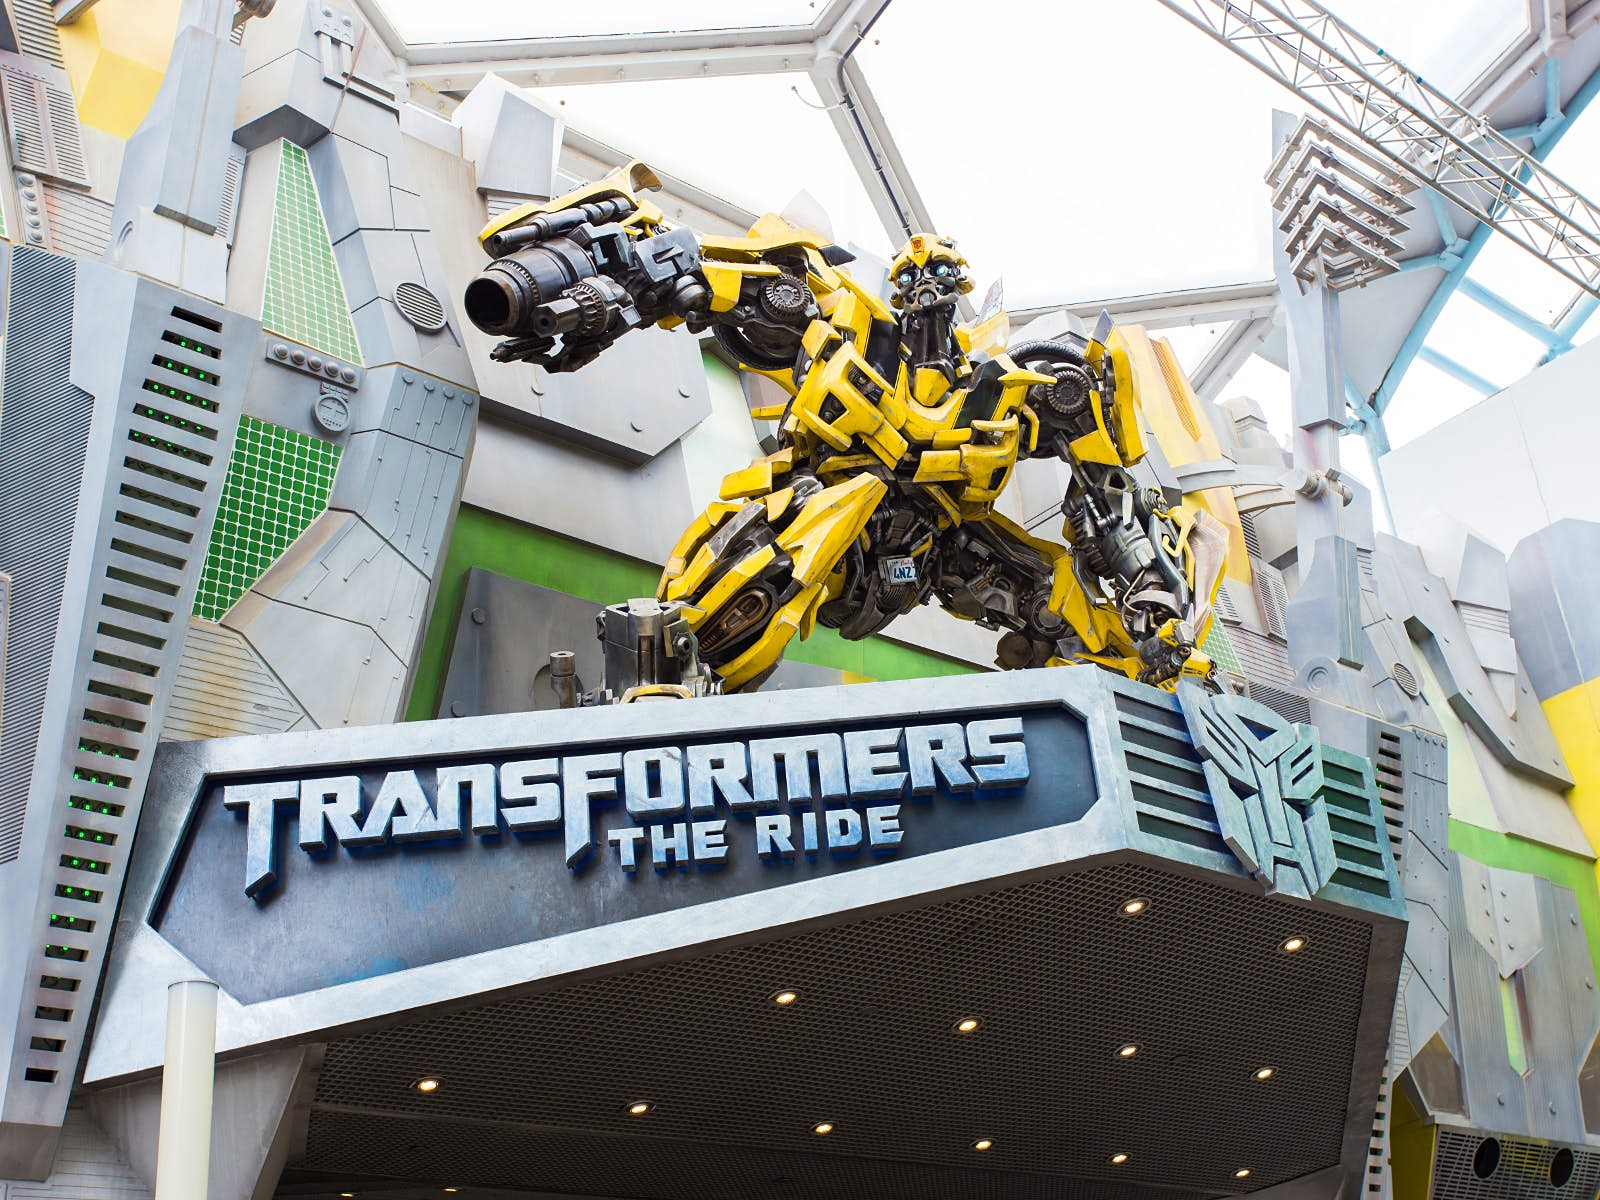 Disney alternatives - The dynamic 3D Transformers Ride at Universal Studios, Singapore. The character Bumblebee crouches above the entrance to the ride